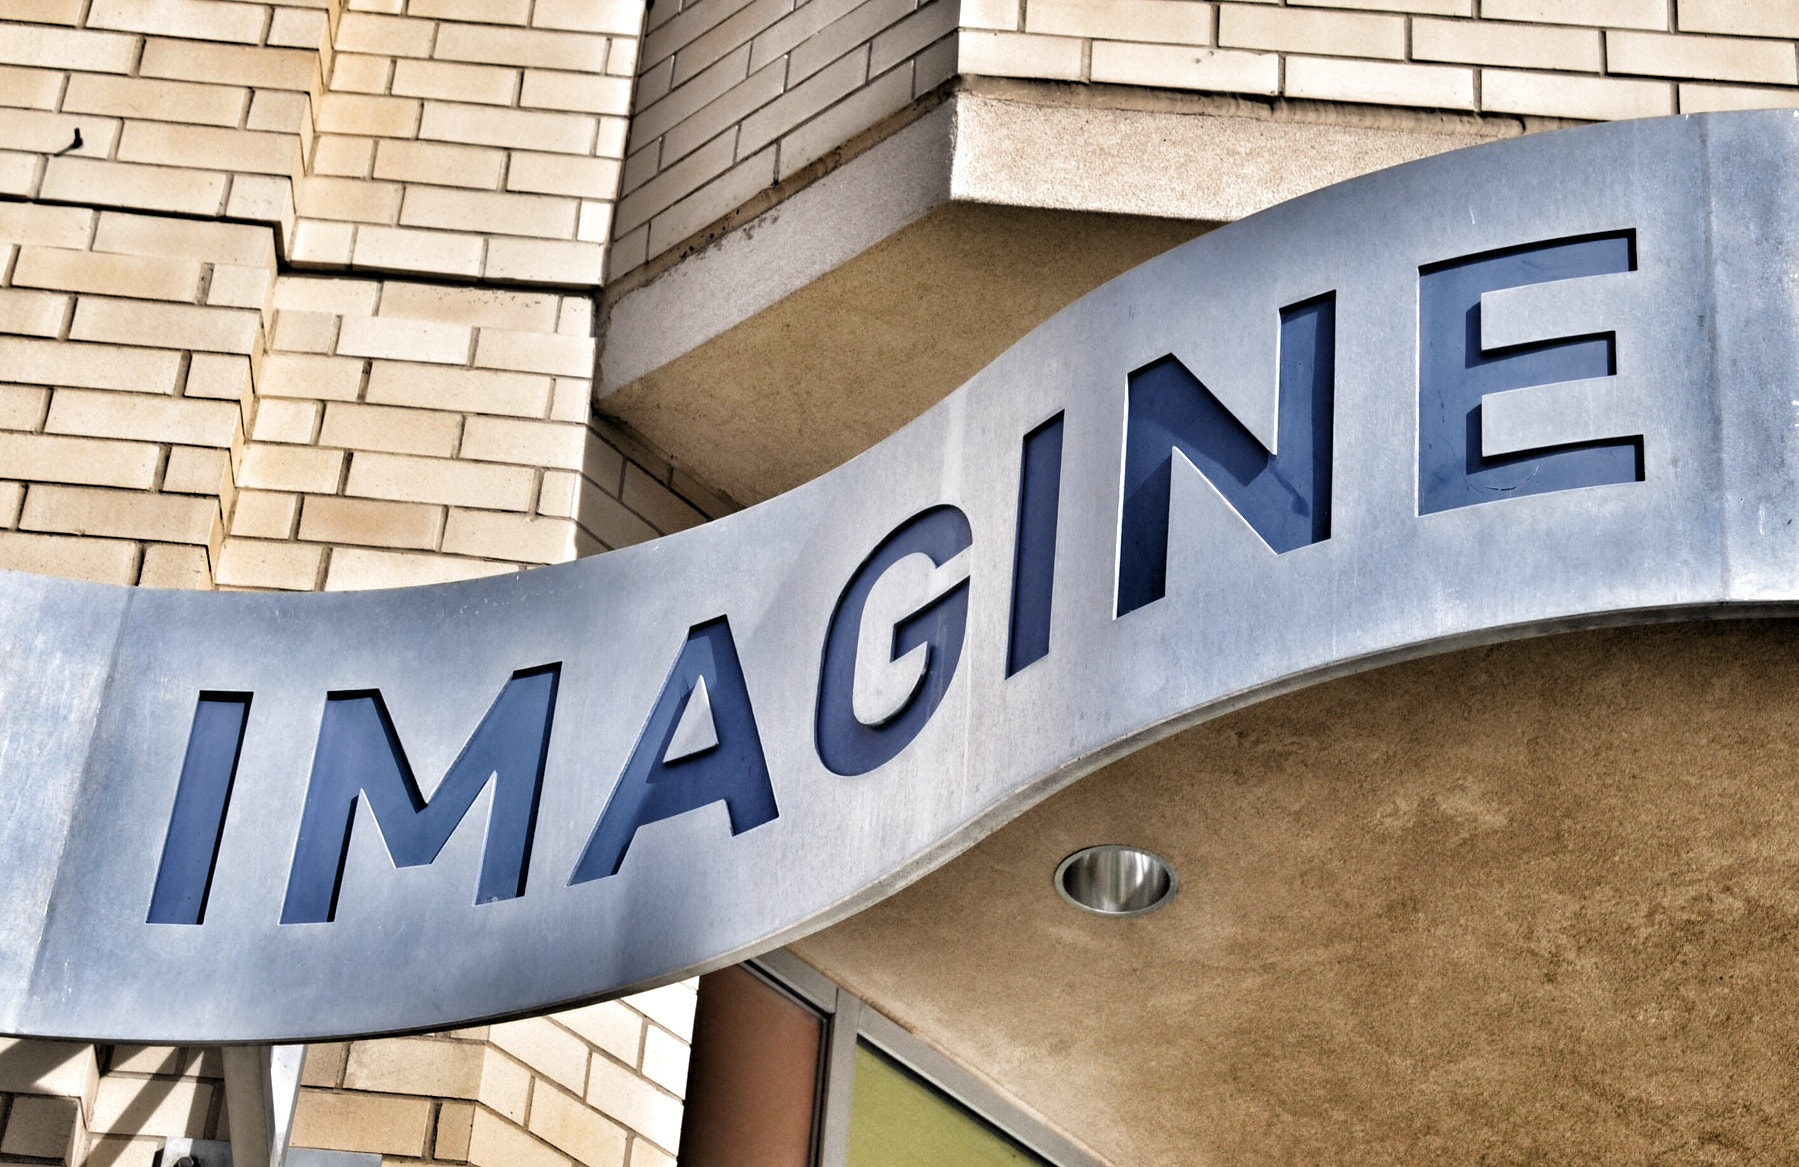 Photograph Imagine by Melissa Reyes-Abbey on 500px